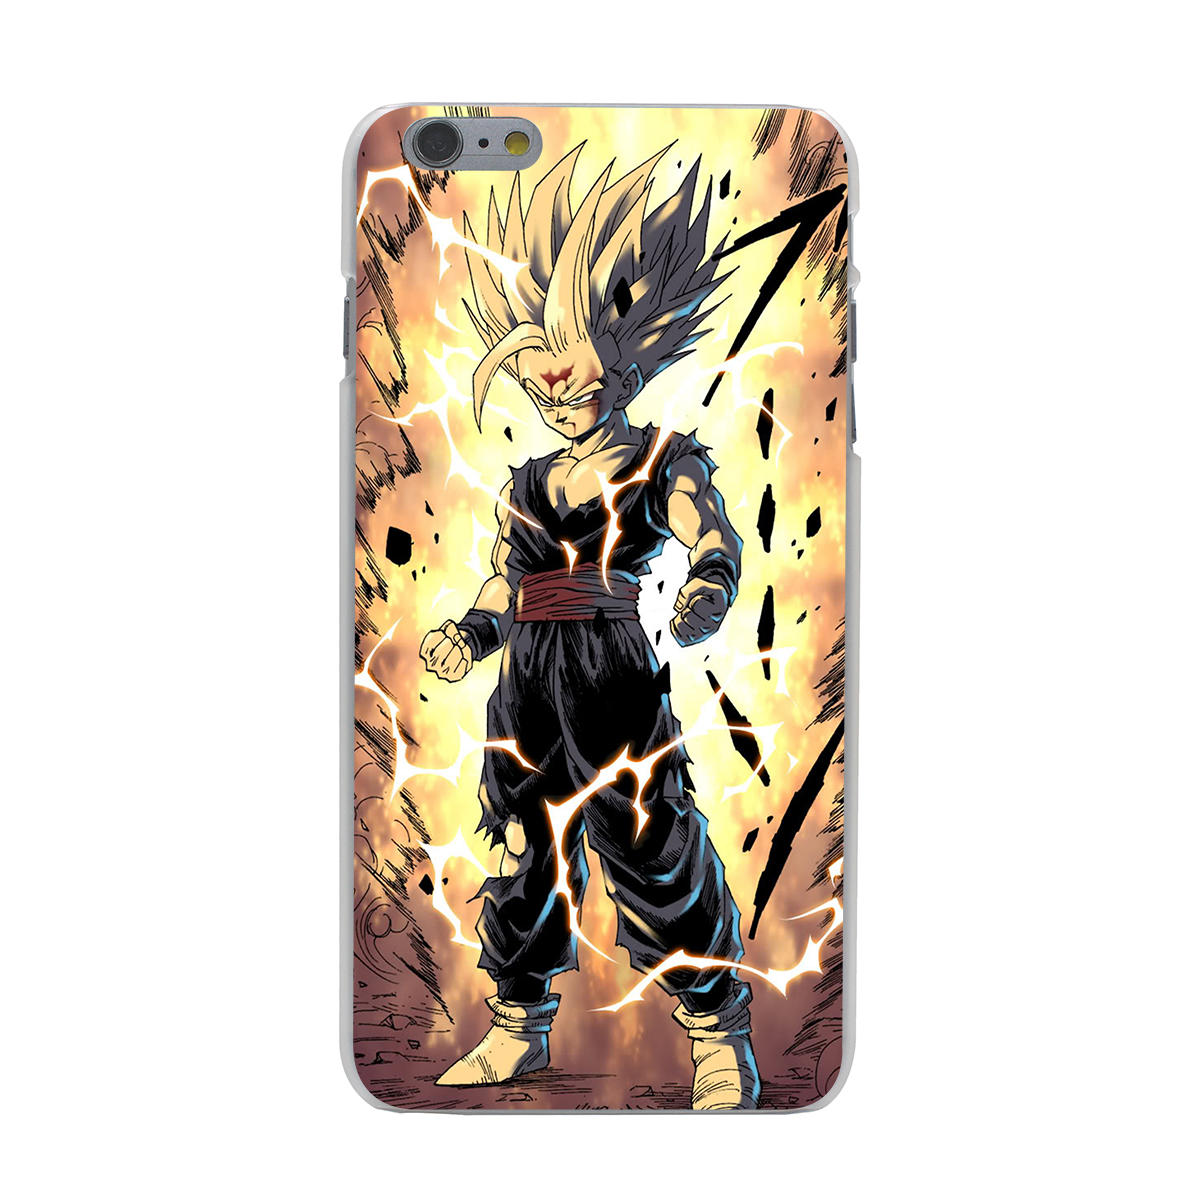 dragon ball z goku hard phone cover case transparent for. Black Bedroom Furniture Sets. Home Design Ideas